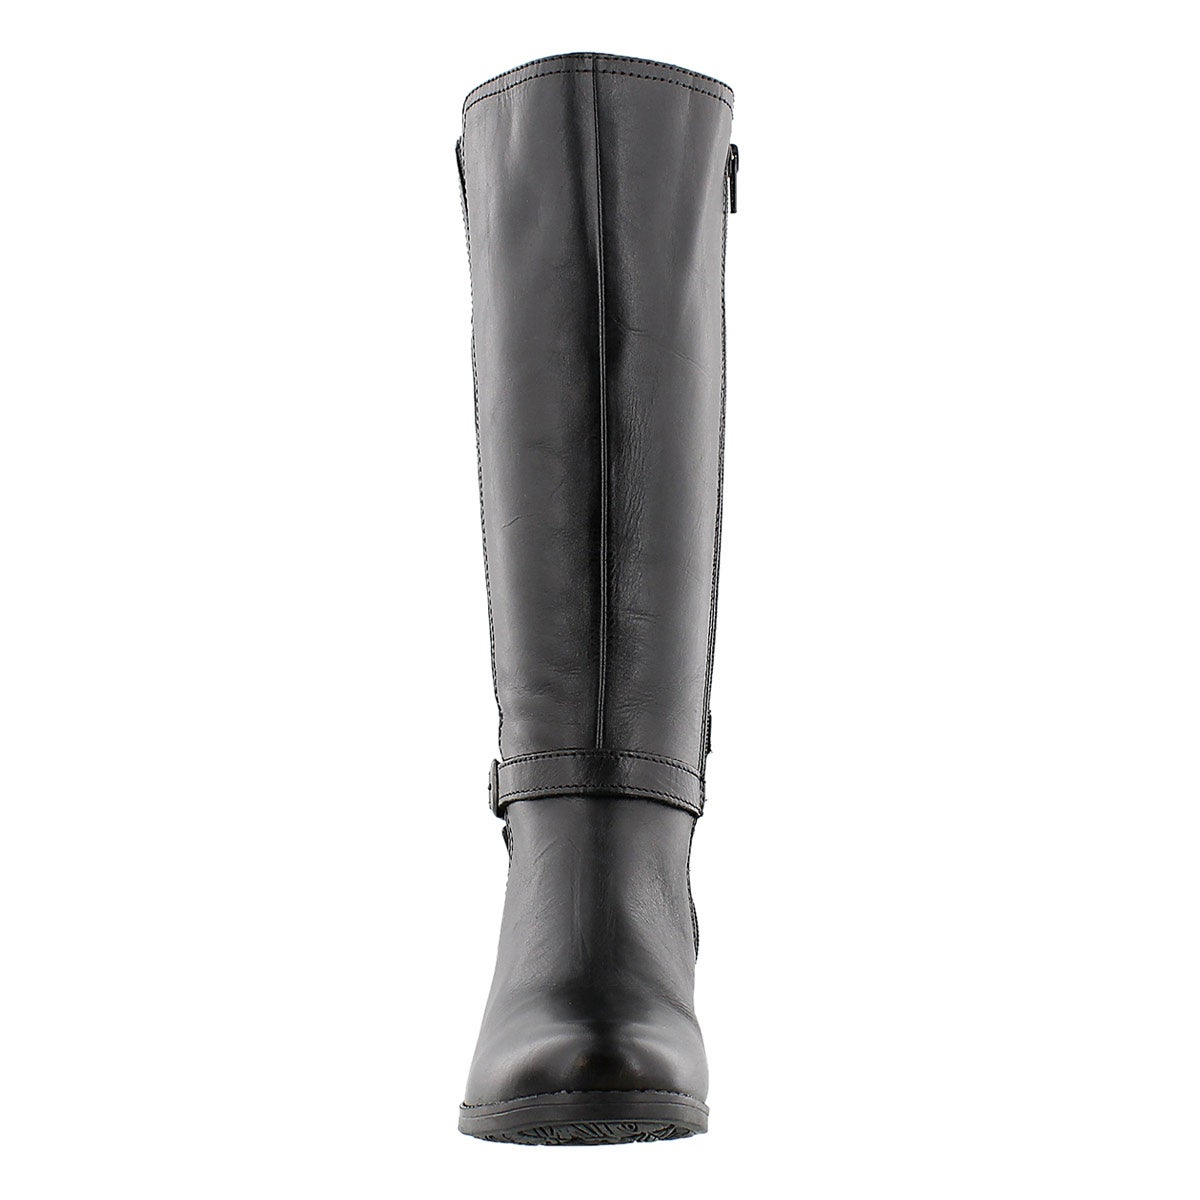 Lds Zoey blk leather tall boots